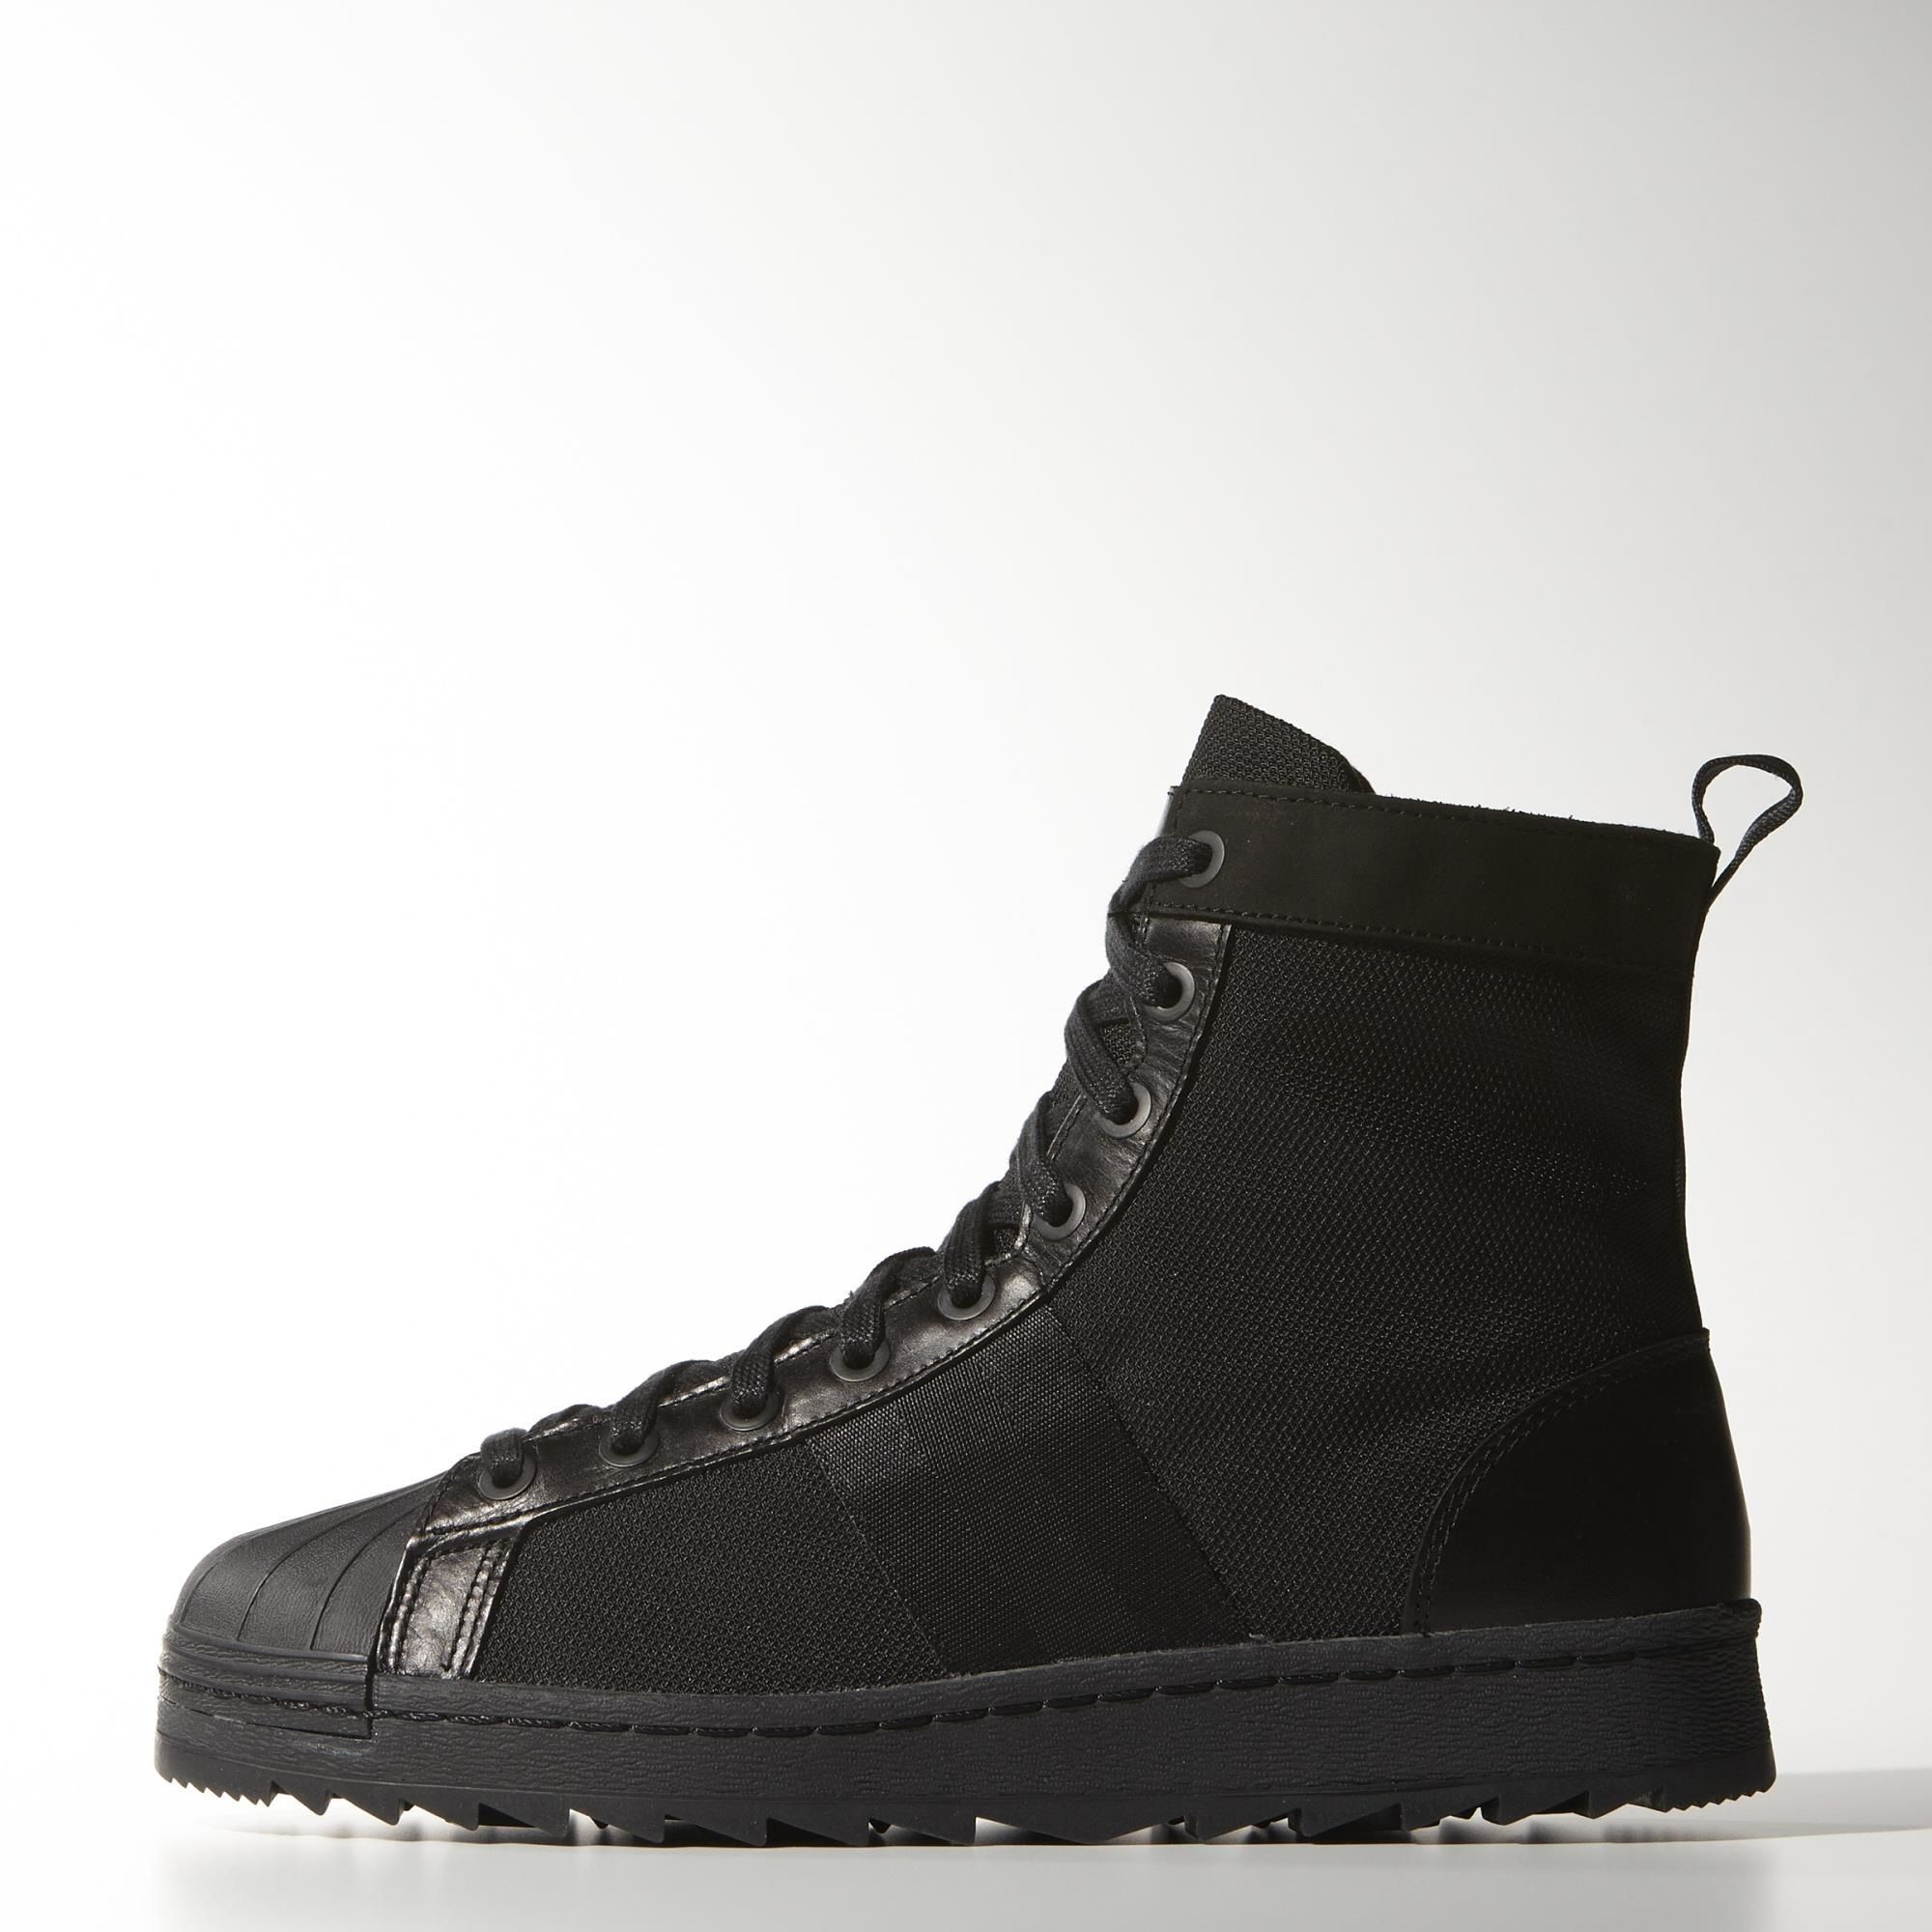 These men\u0027s boots get the iconic adidas Superstar ready for cold weather.  Giving the shell-toe legend a rugged, winter-ready build, they feature a  canvas ...